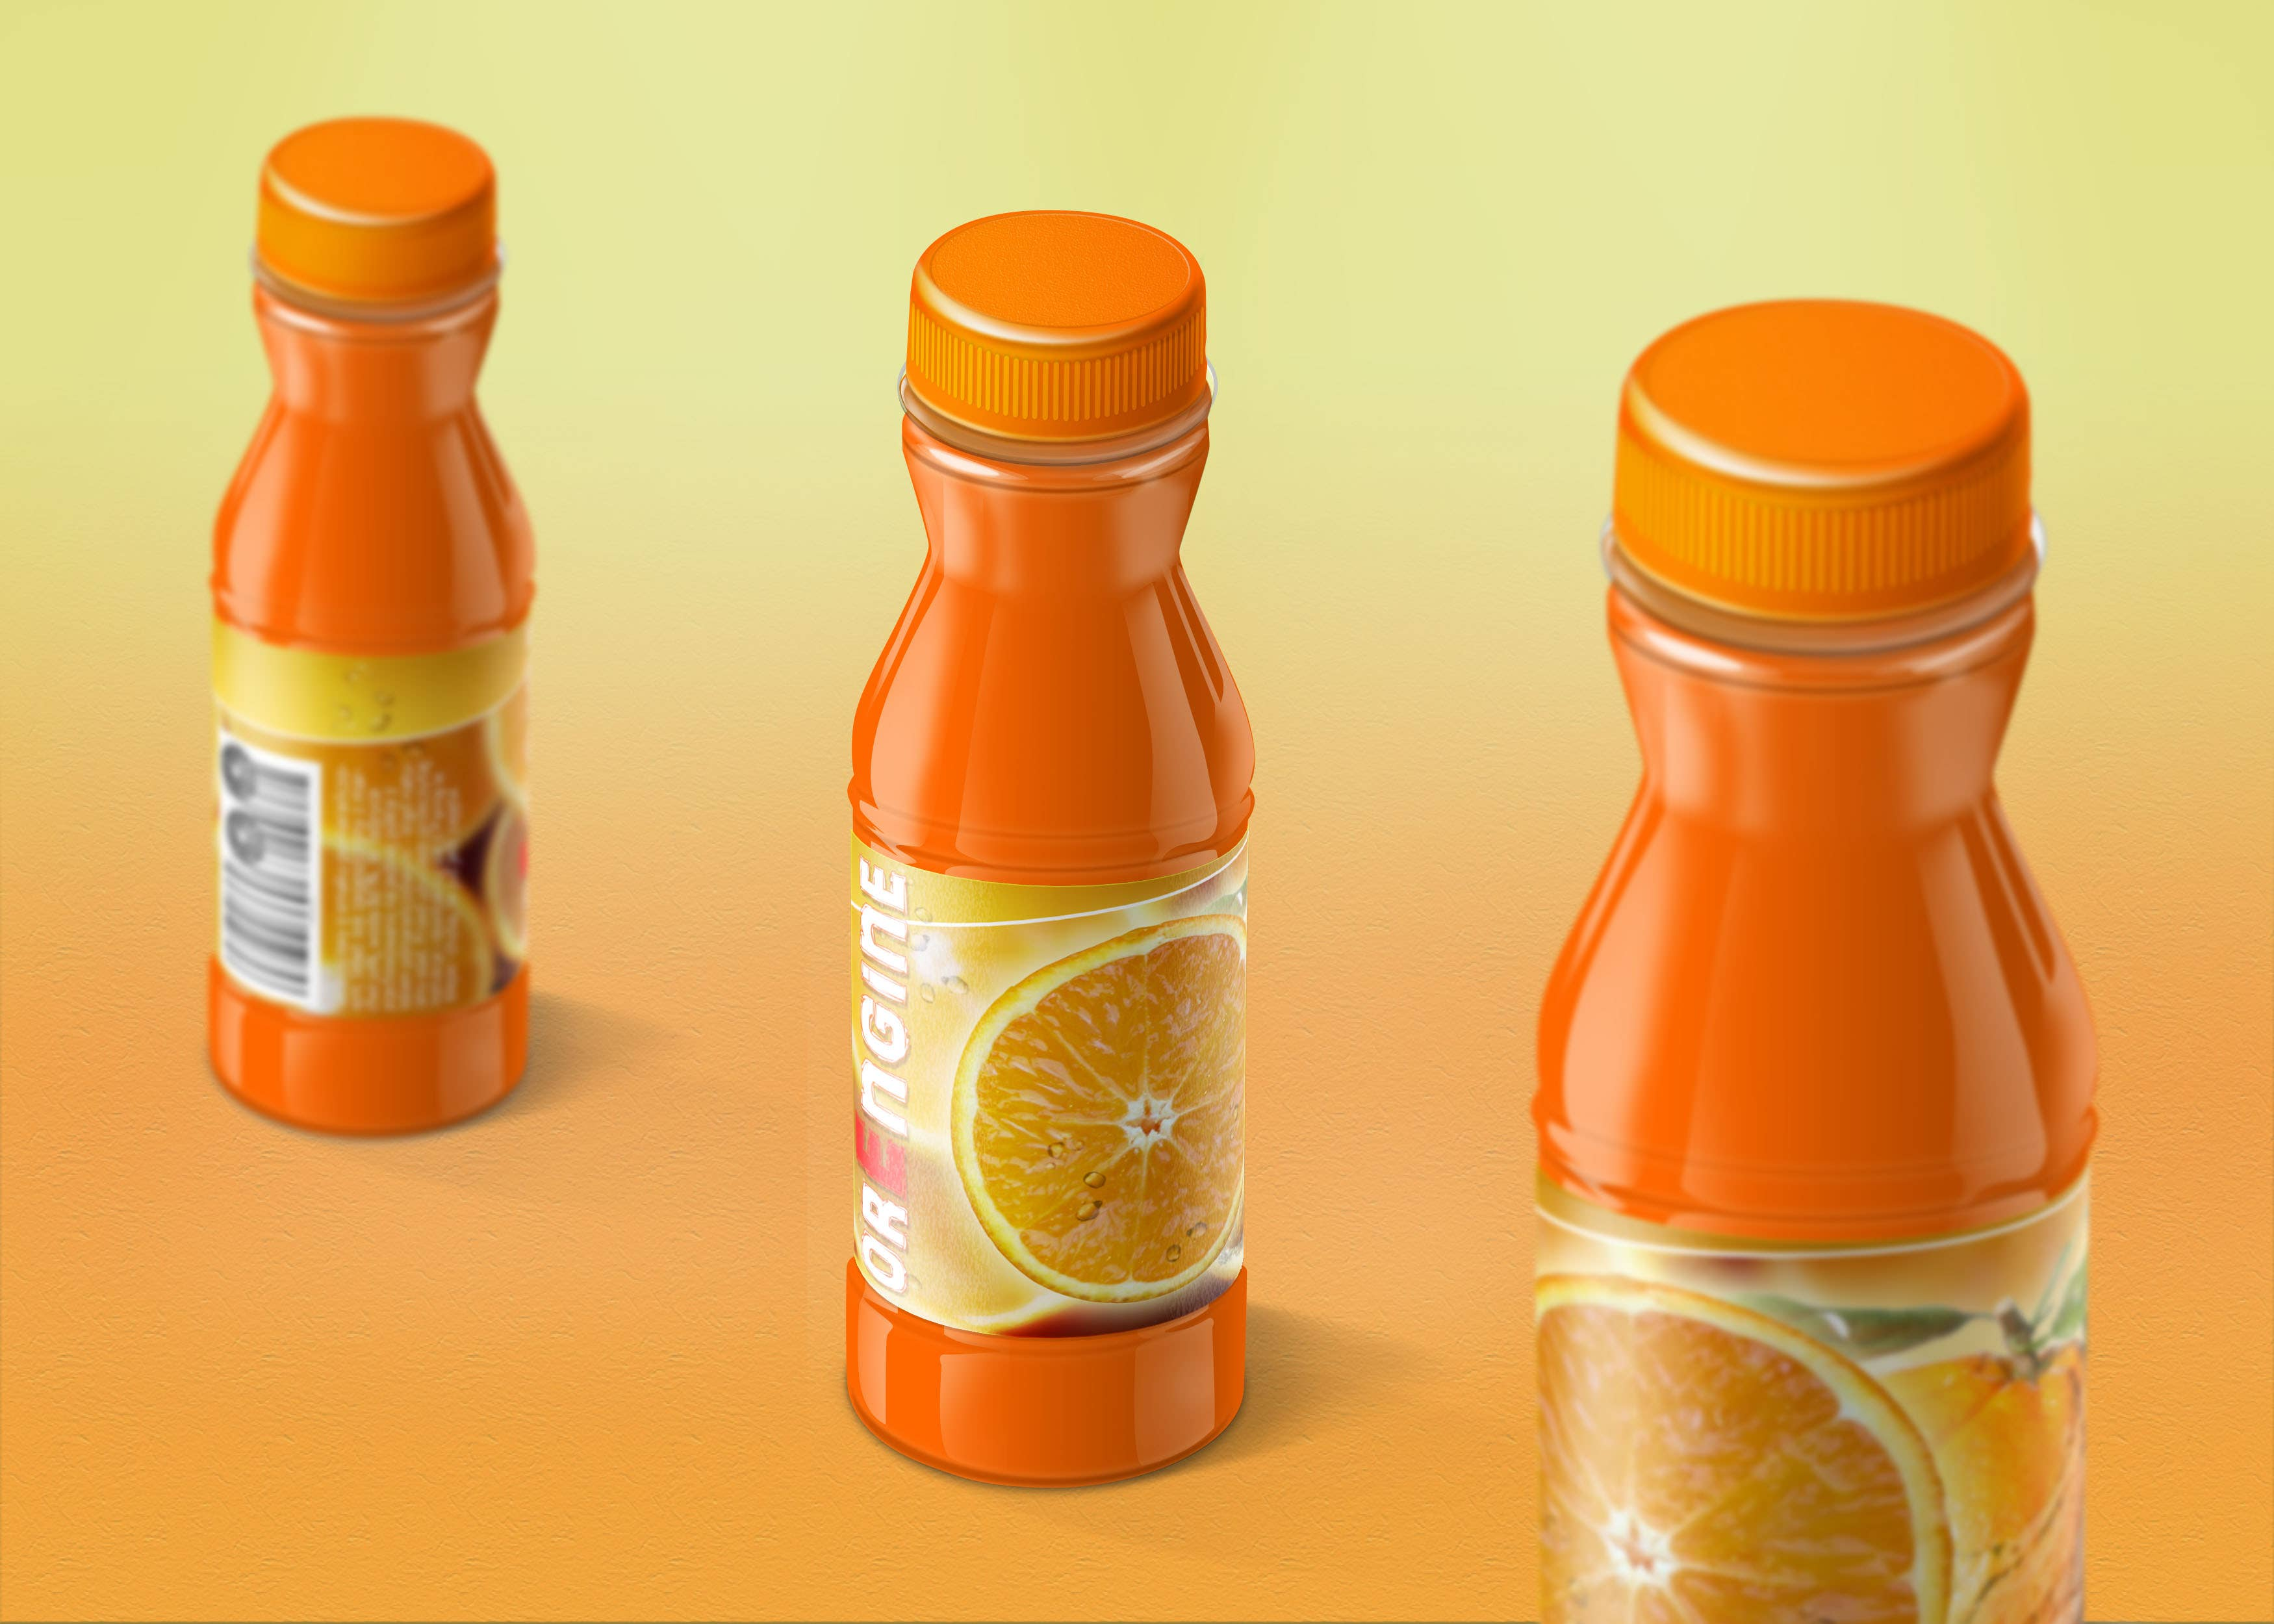 Concept project of product design